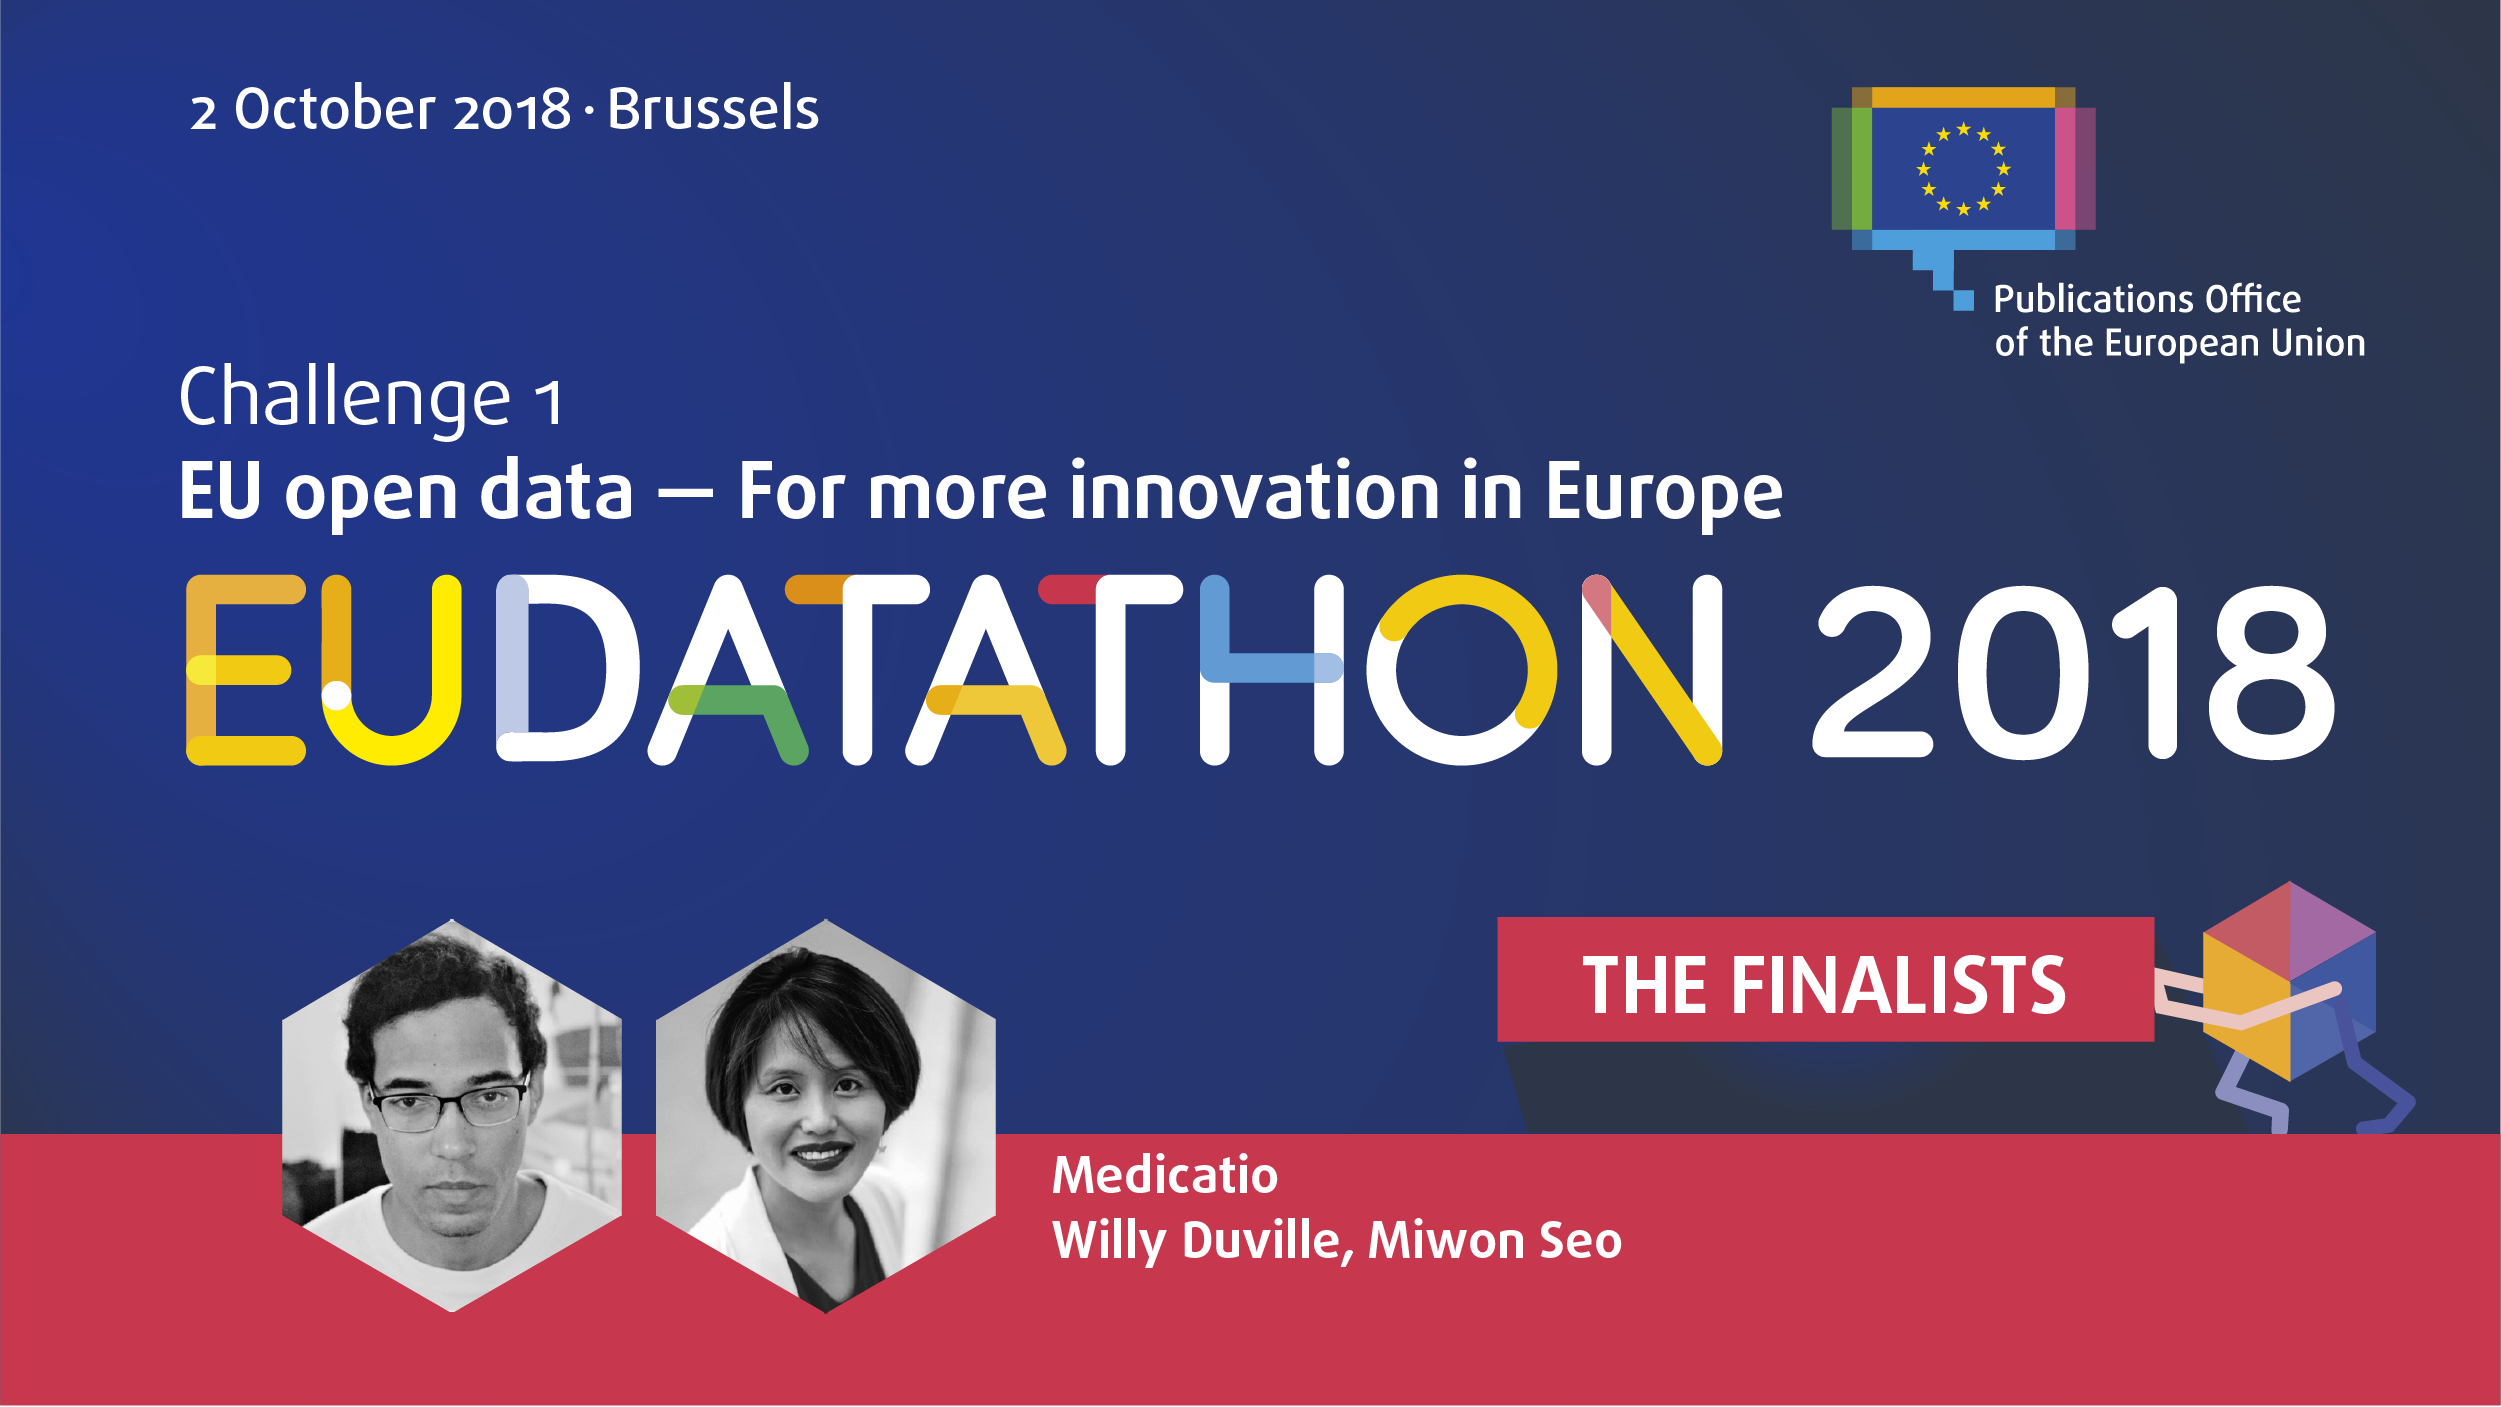 EU Datathon 2018 images for all challenges